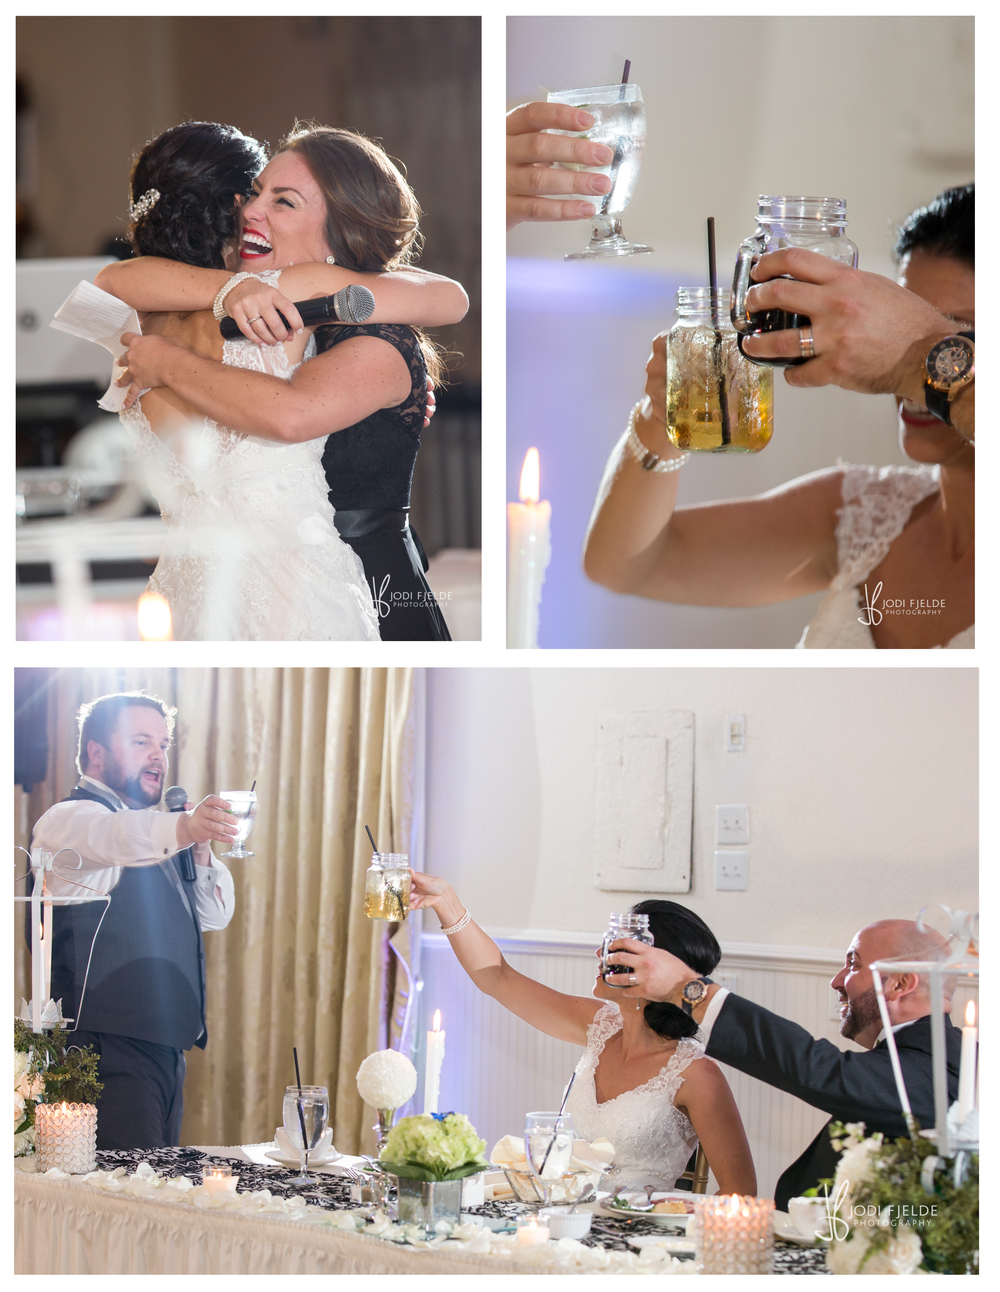 Highland_Manor_Apopka_Florida_wedding_Jackie_&_Tim_photography_jodi_Fjelde_photography-31.jpg